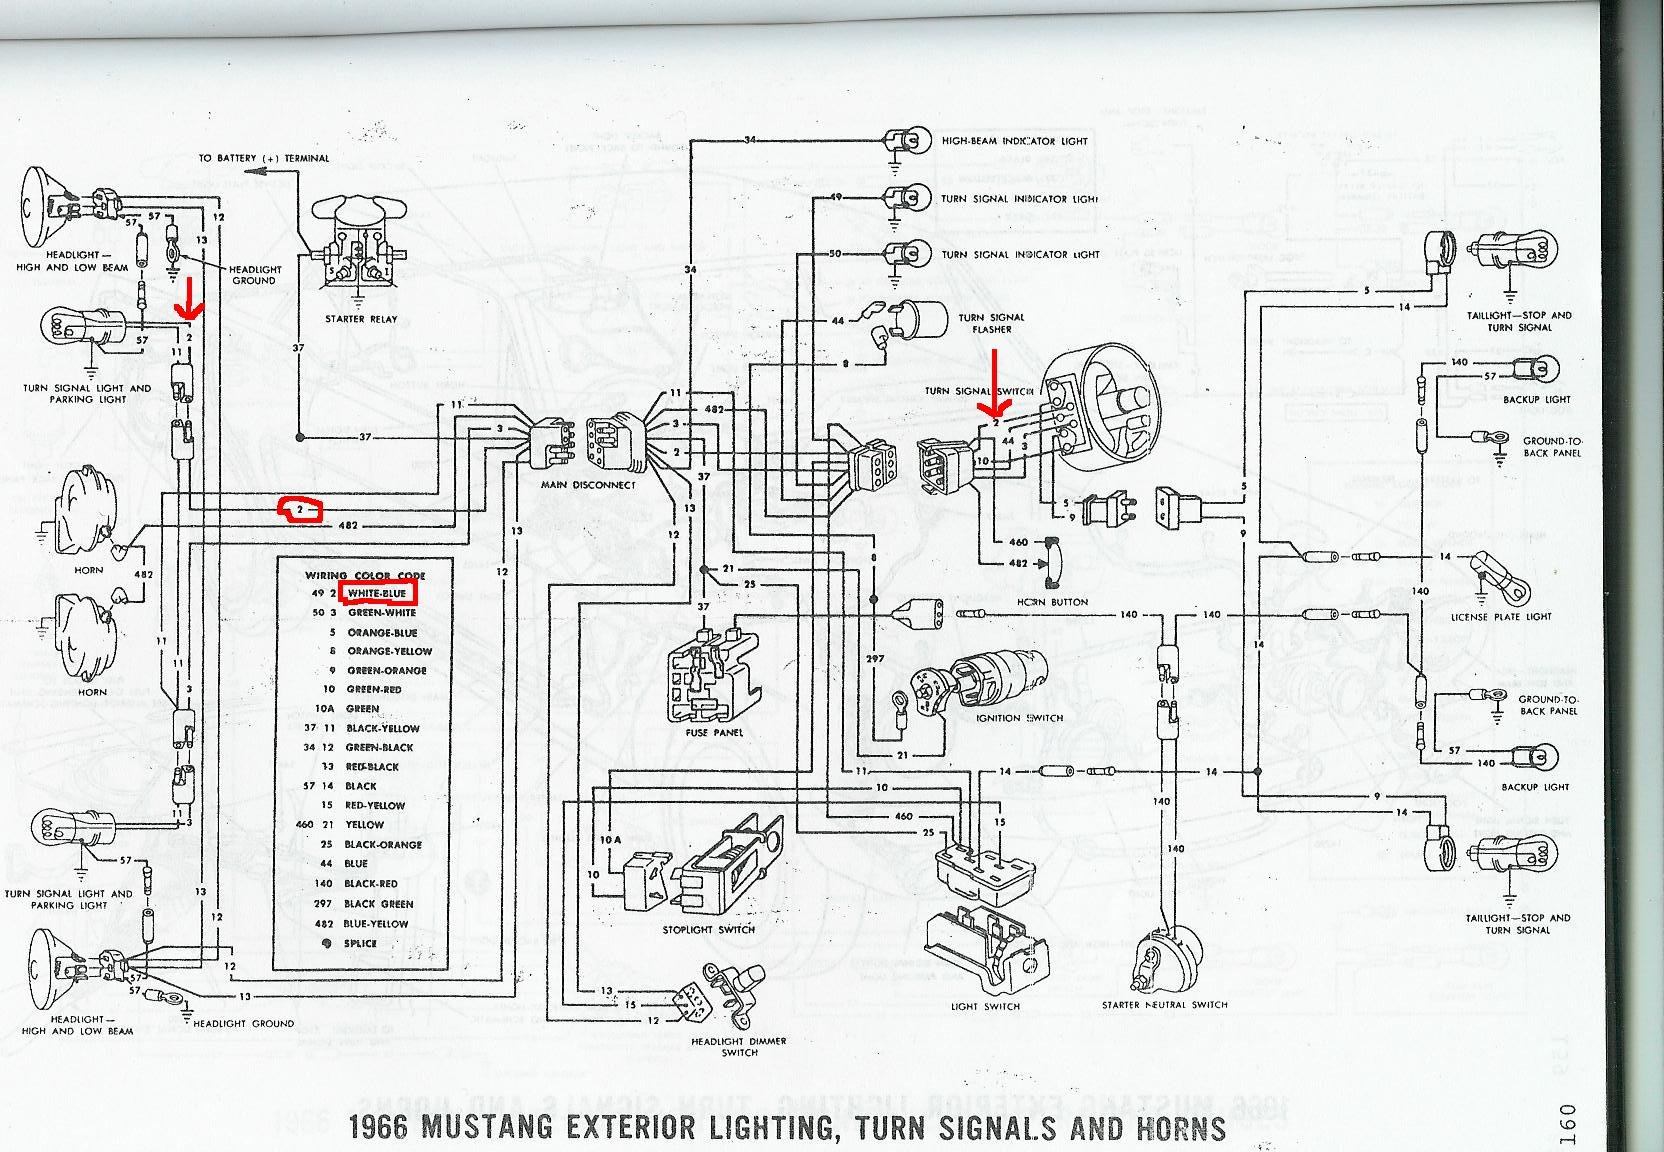 72 ford f100 dash wiring diagram defy fridge thermostat 1968 alternator free picture design of 66 mustang diagrams schematic rh 71 historica94 de 1972 f250 electrical hook up